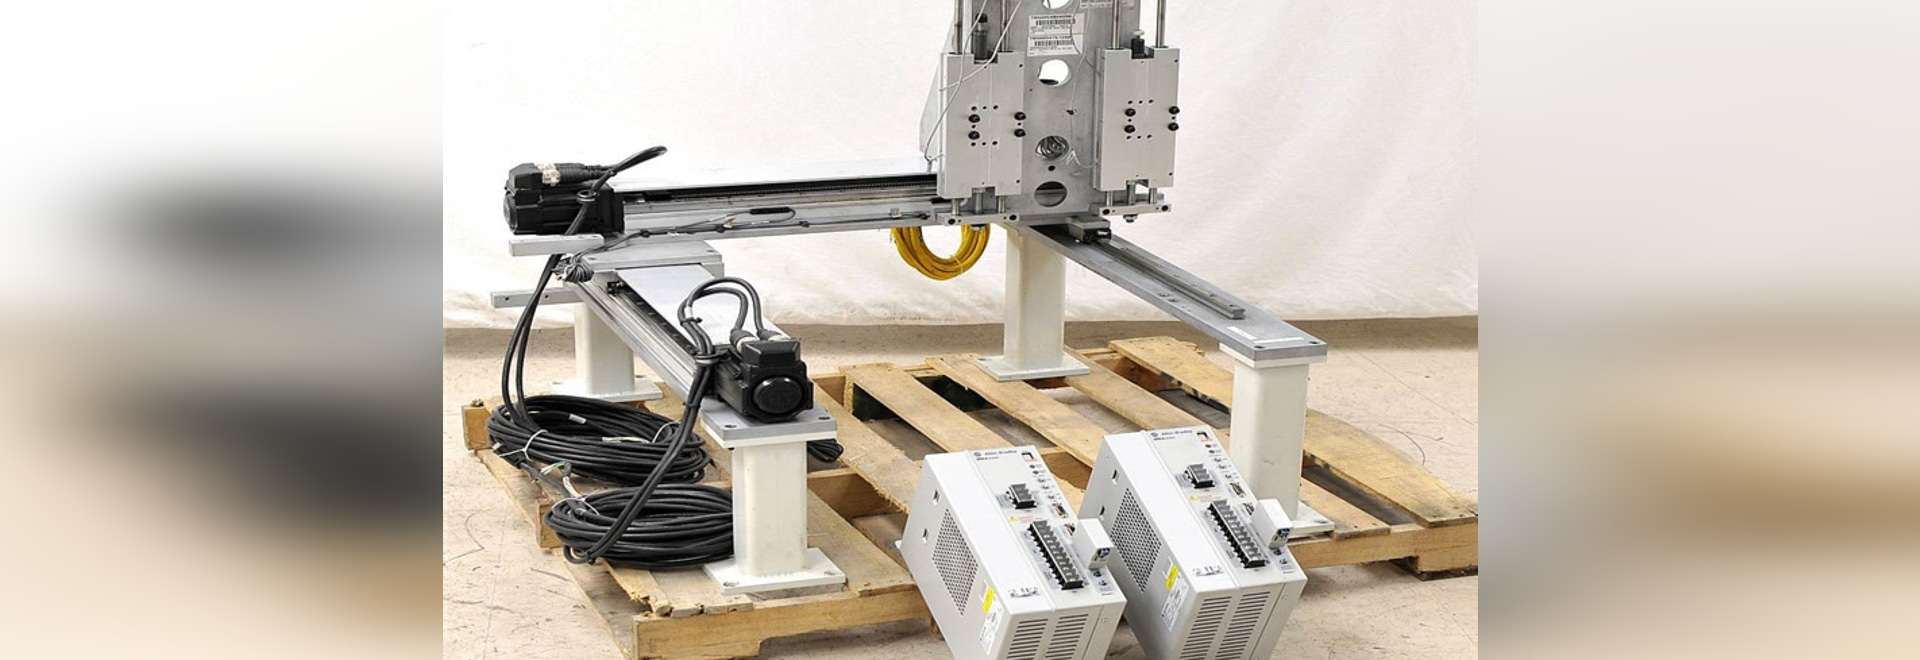 linear positioning system